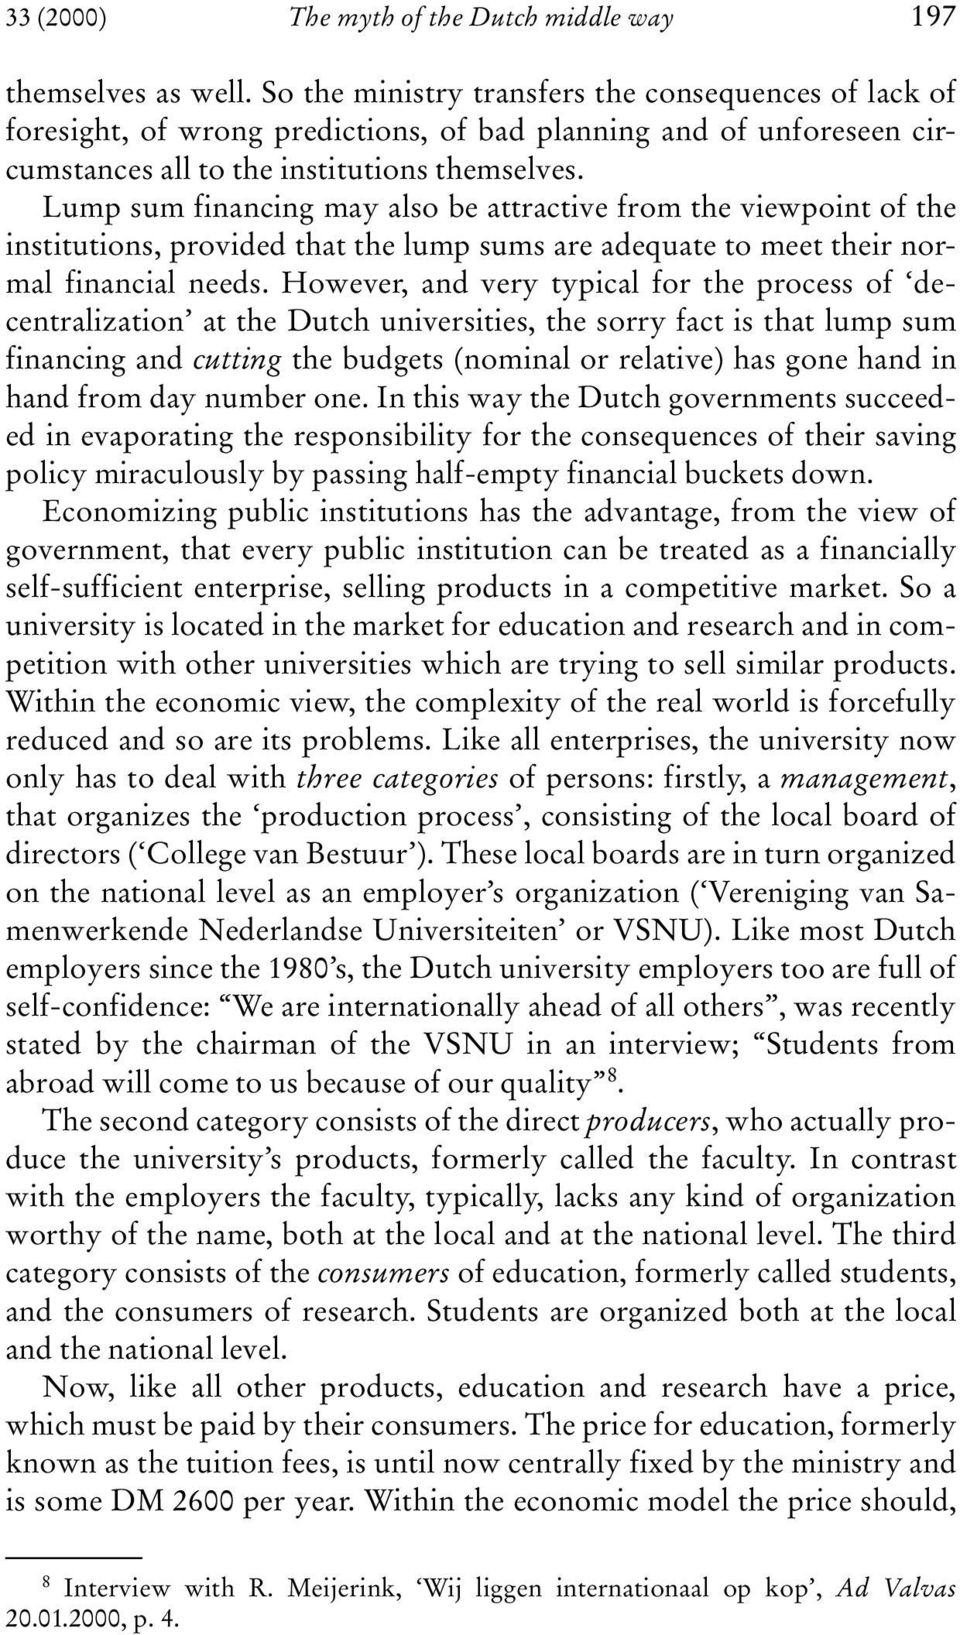 However, and very typical for the process of decentralization at the Dutch universities, the sorry fact is that lump sum financing and cutting the budgets (nominal or relative) has gone hand in hand